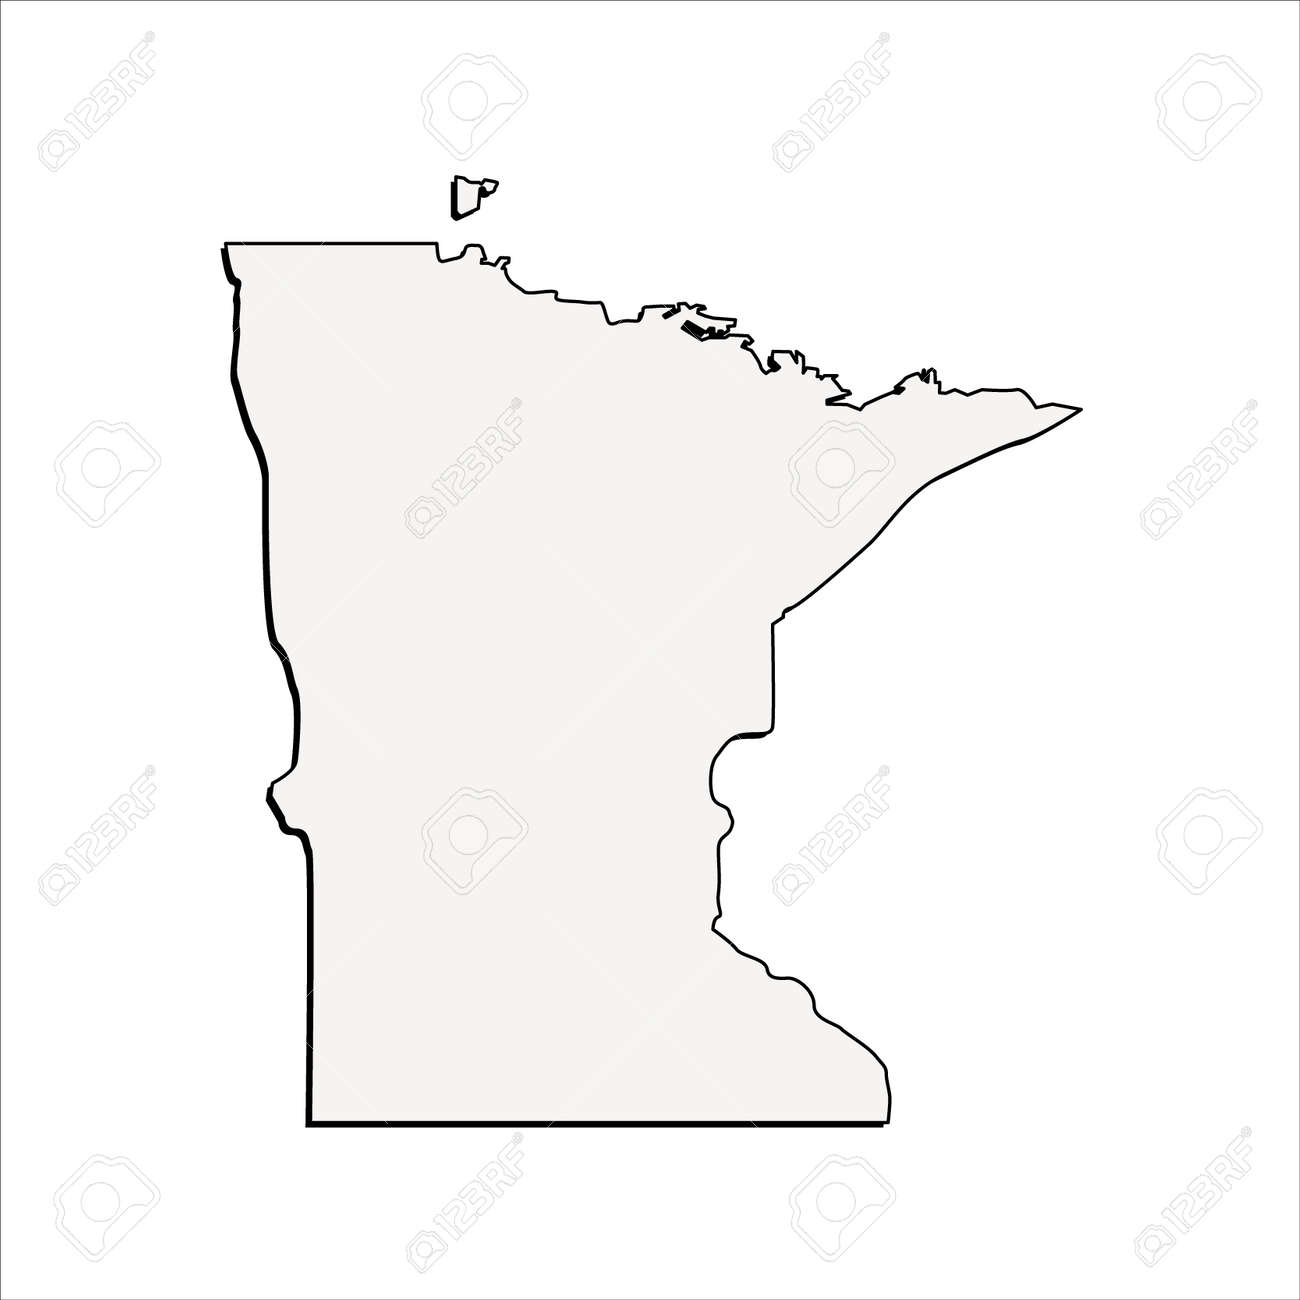 vector minnesota state 3d outline map royalty free cliparts vectors